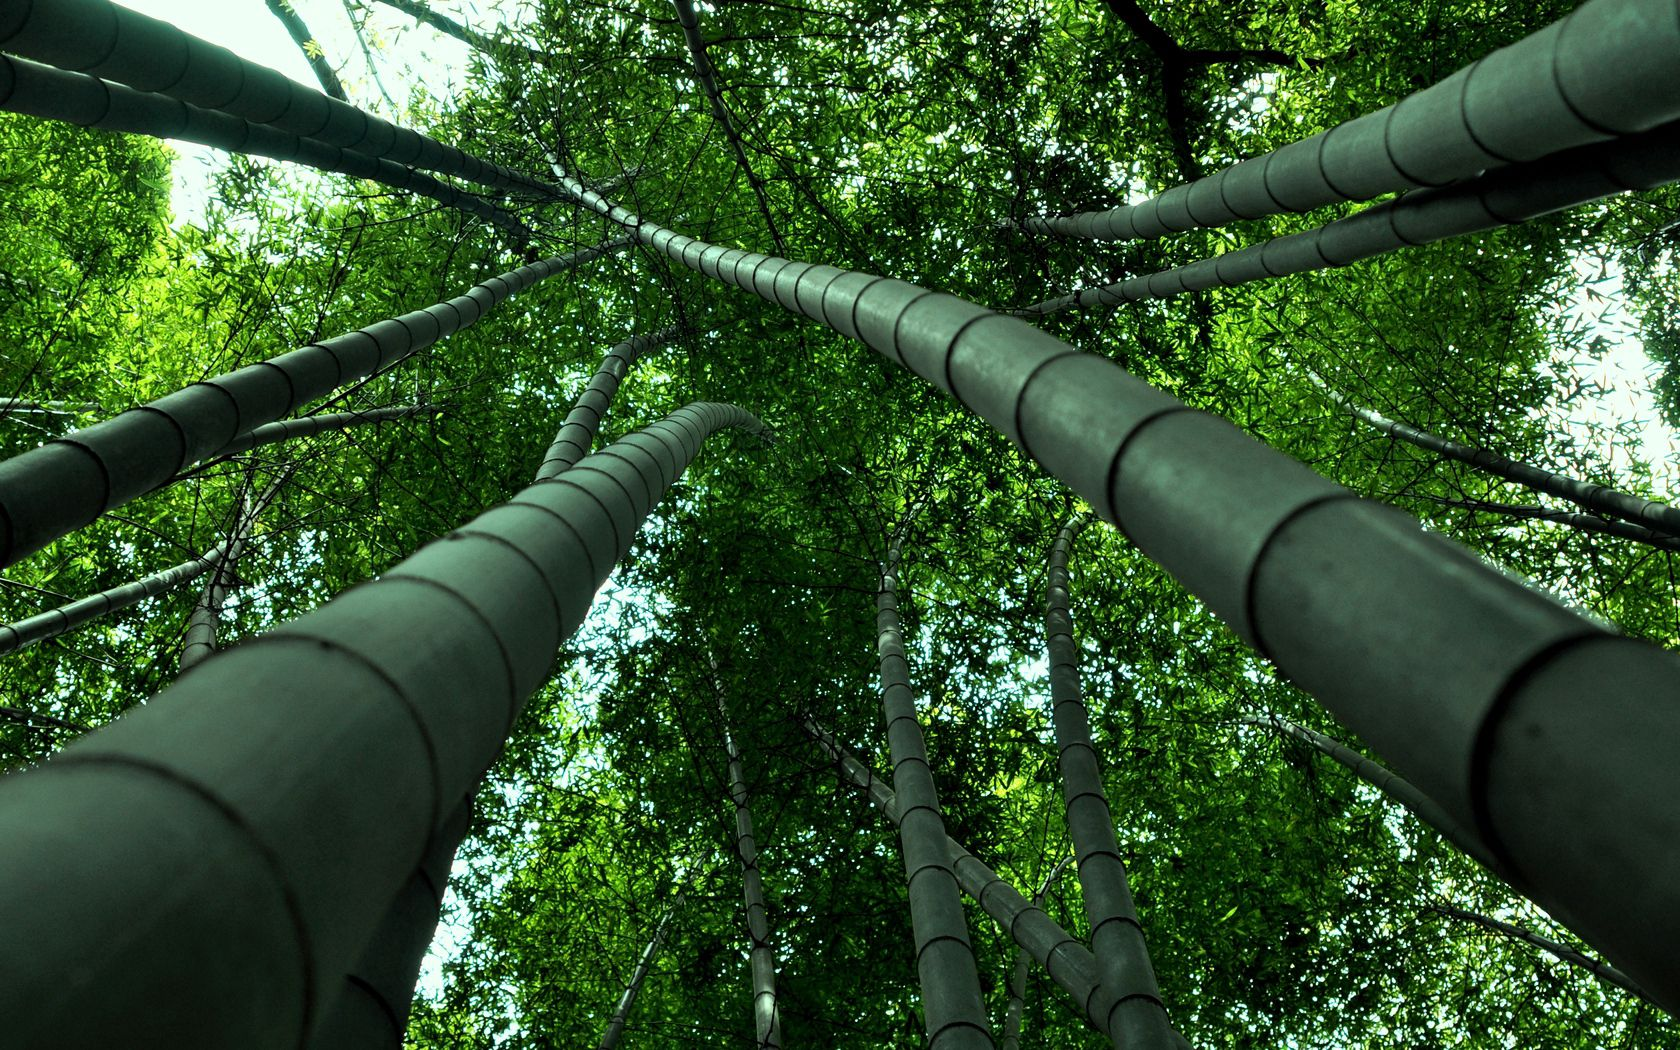 104991 download wallpaper Nature, Bamboo, View, From Below screensavers and pictures for free